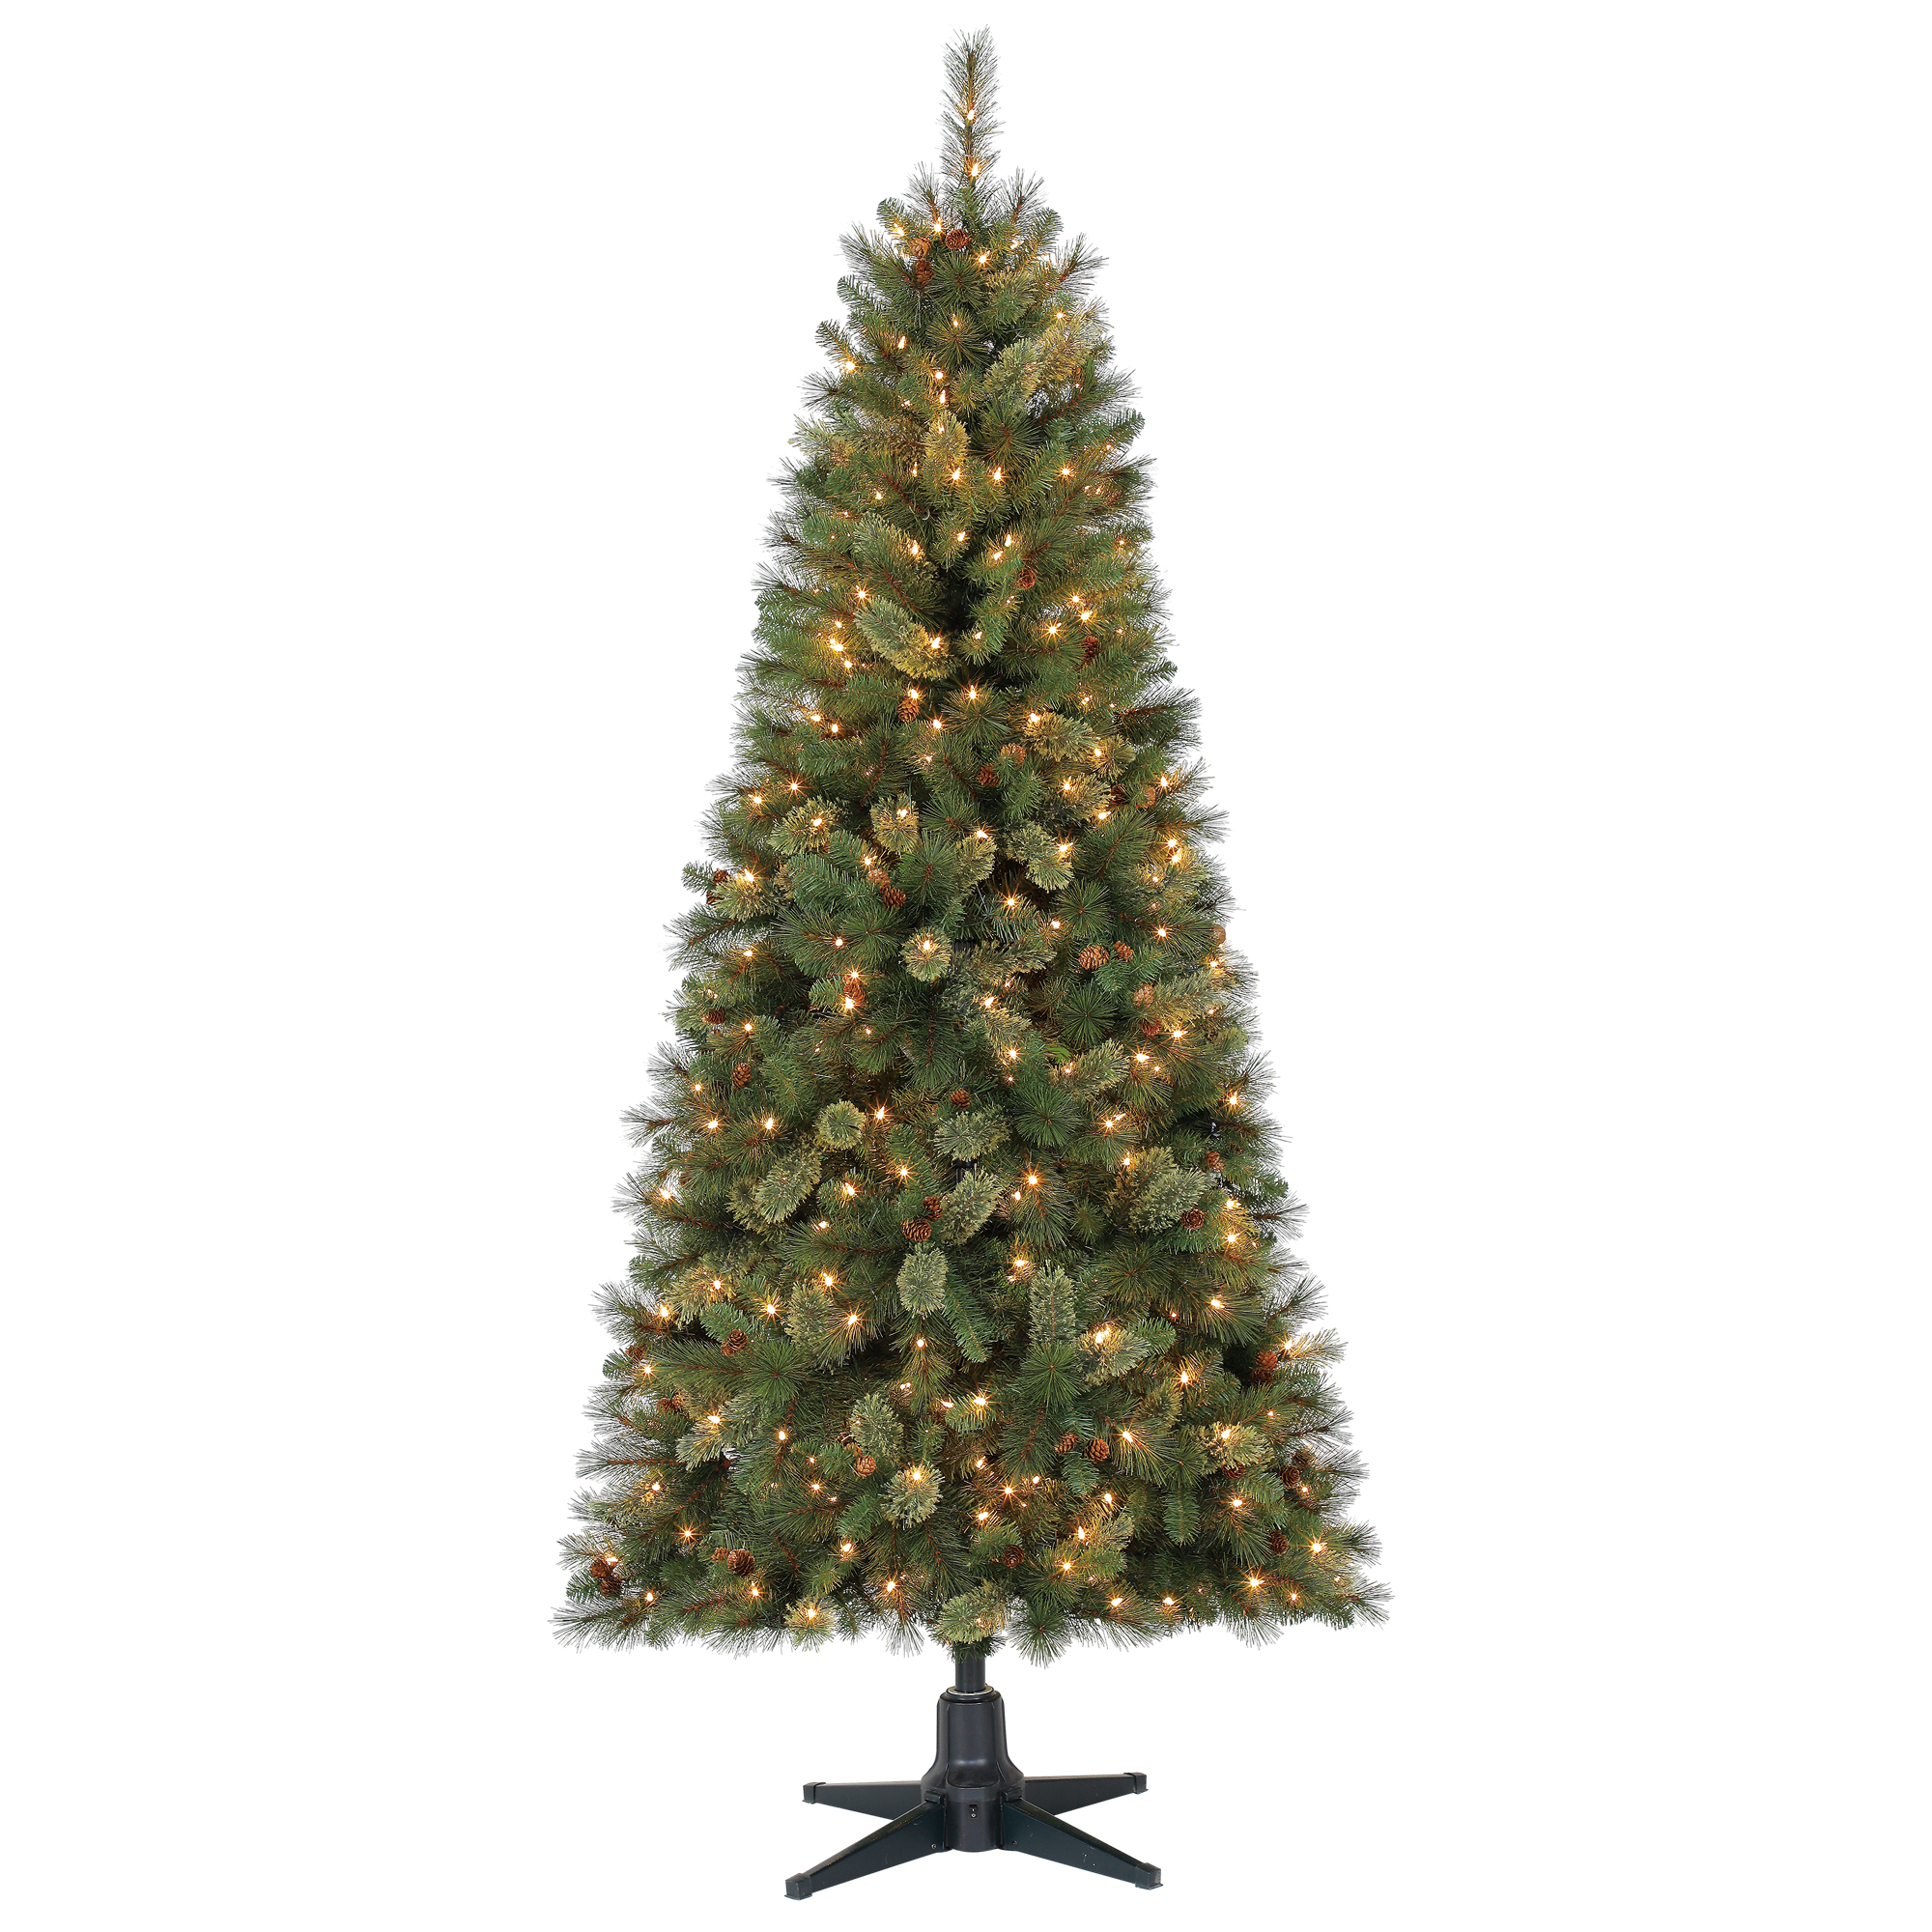 Holiday Time 7ft Pre-Lit Brookfield Fir Cashmere Quick Set Artificial Christmas Tree with 350 Clear Lights - Green